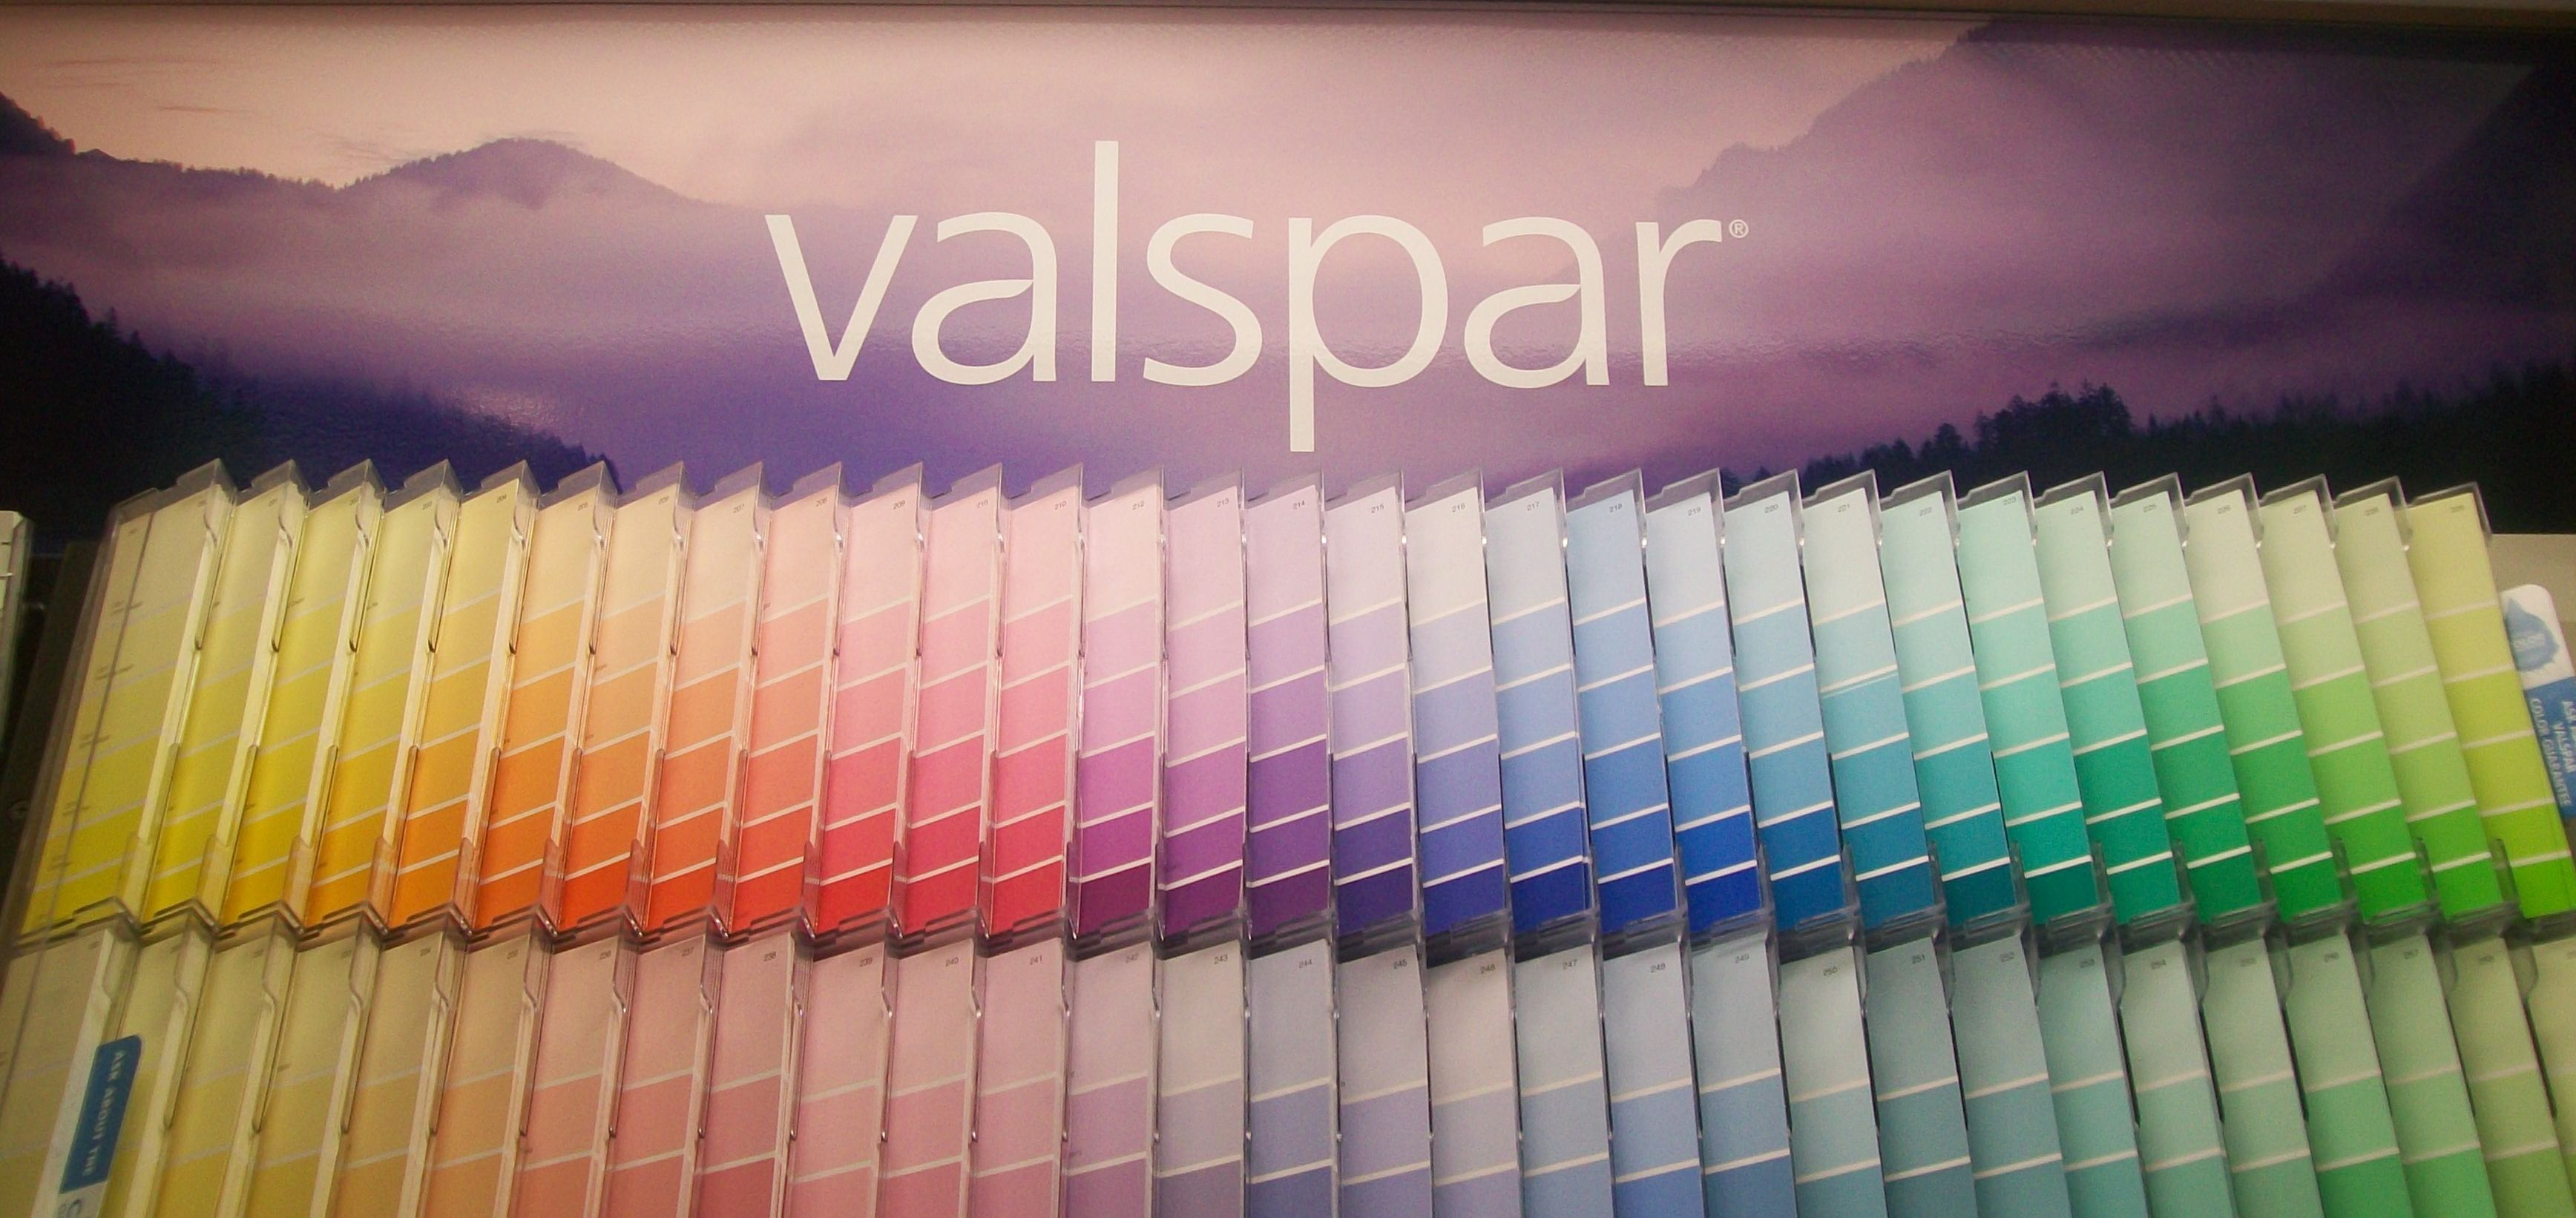 K M Home Center Inc Offers Valspar Paint We Carry Valspar